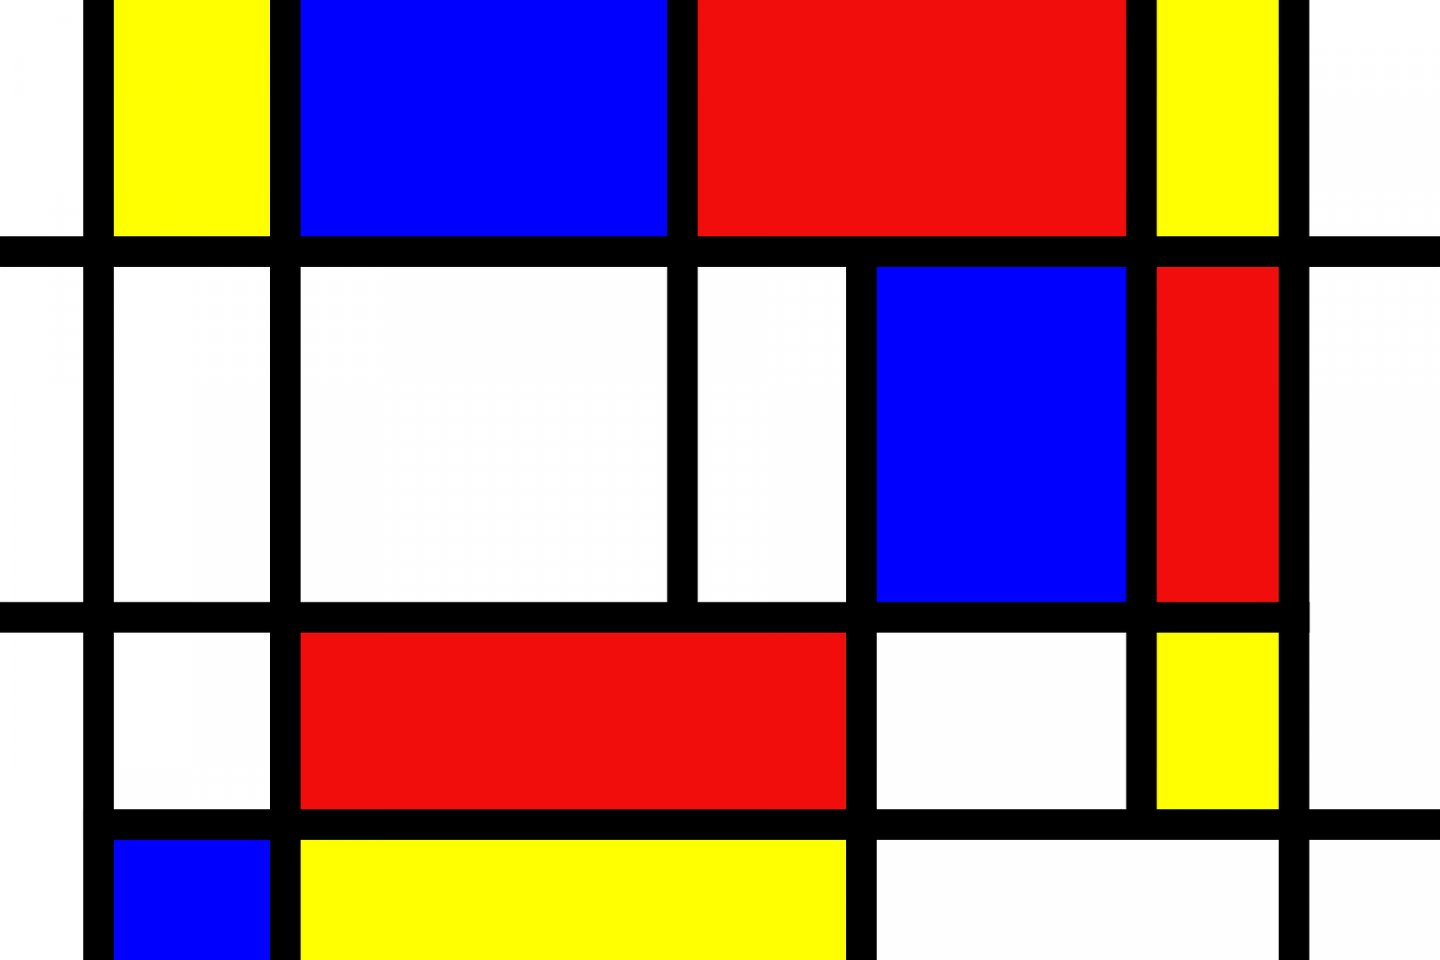 Mondrian became famous for his grid-based art, similar in style to this piece